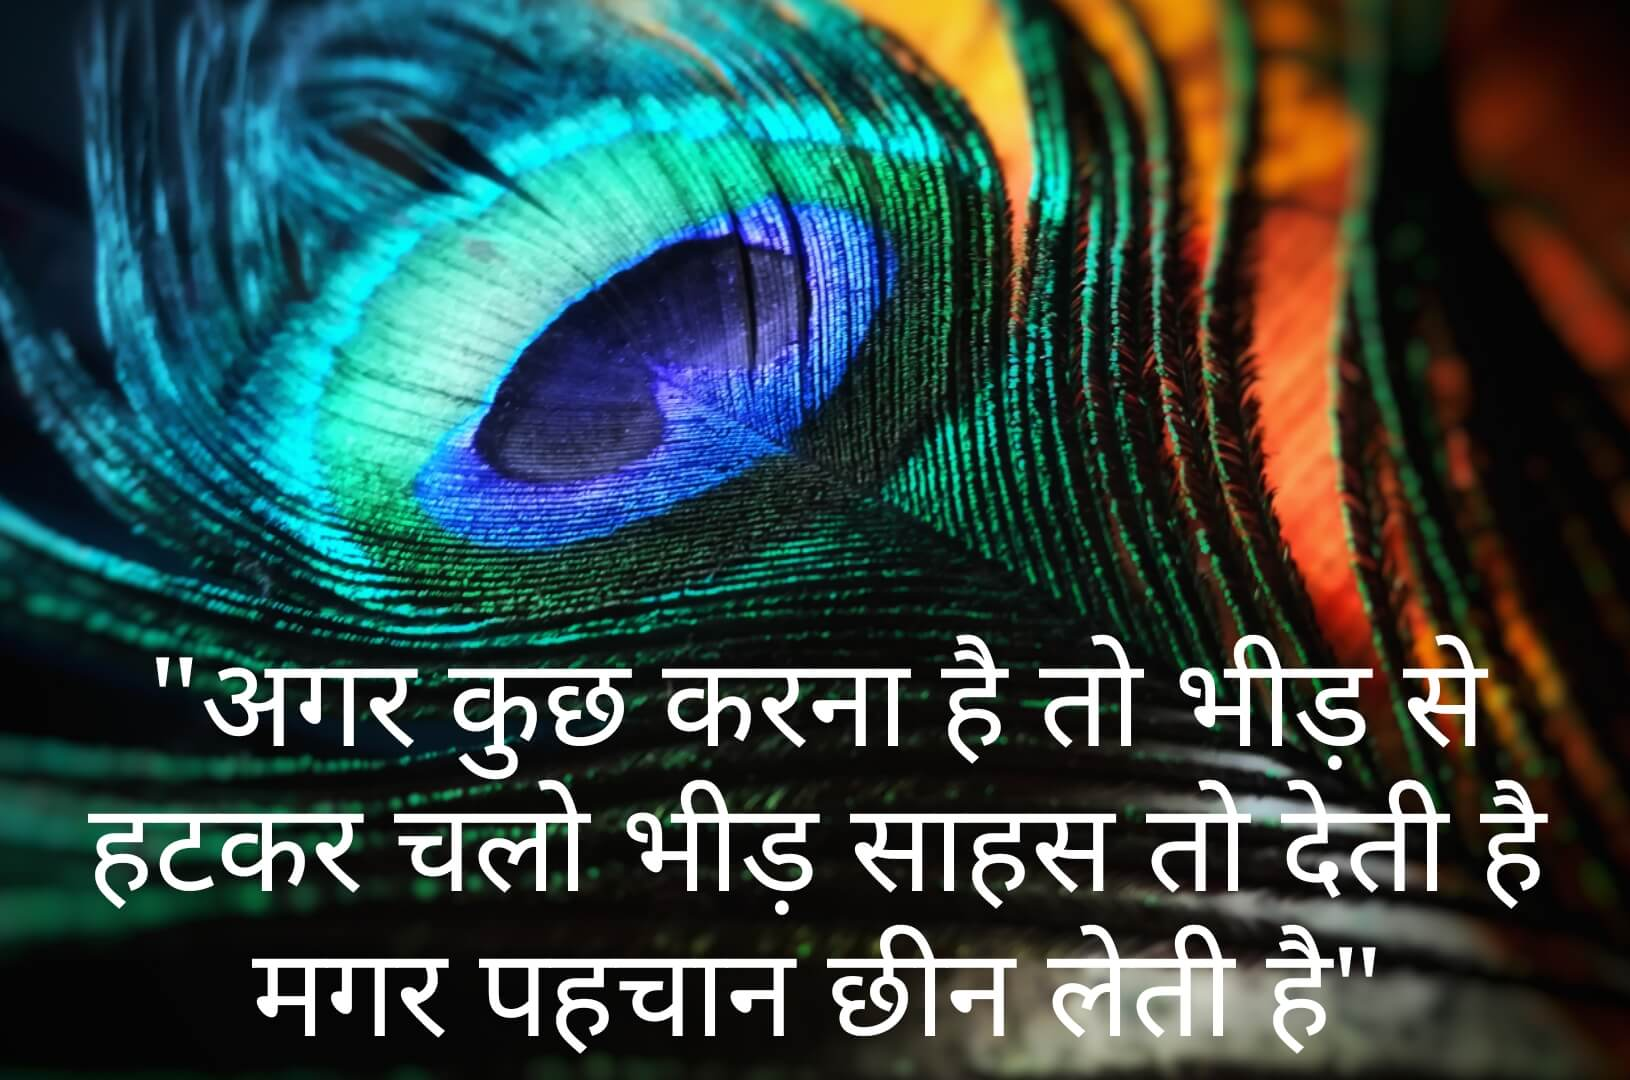 Shayari Motivational in Hindi